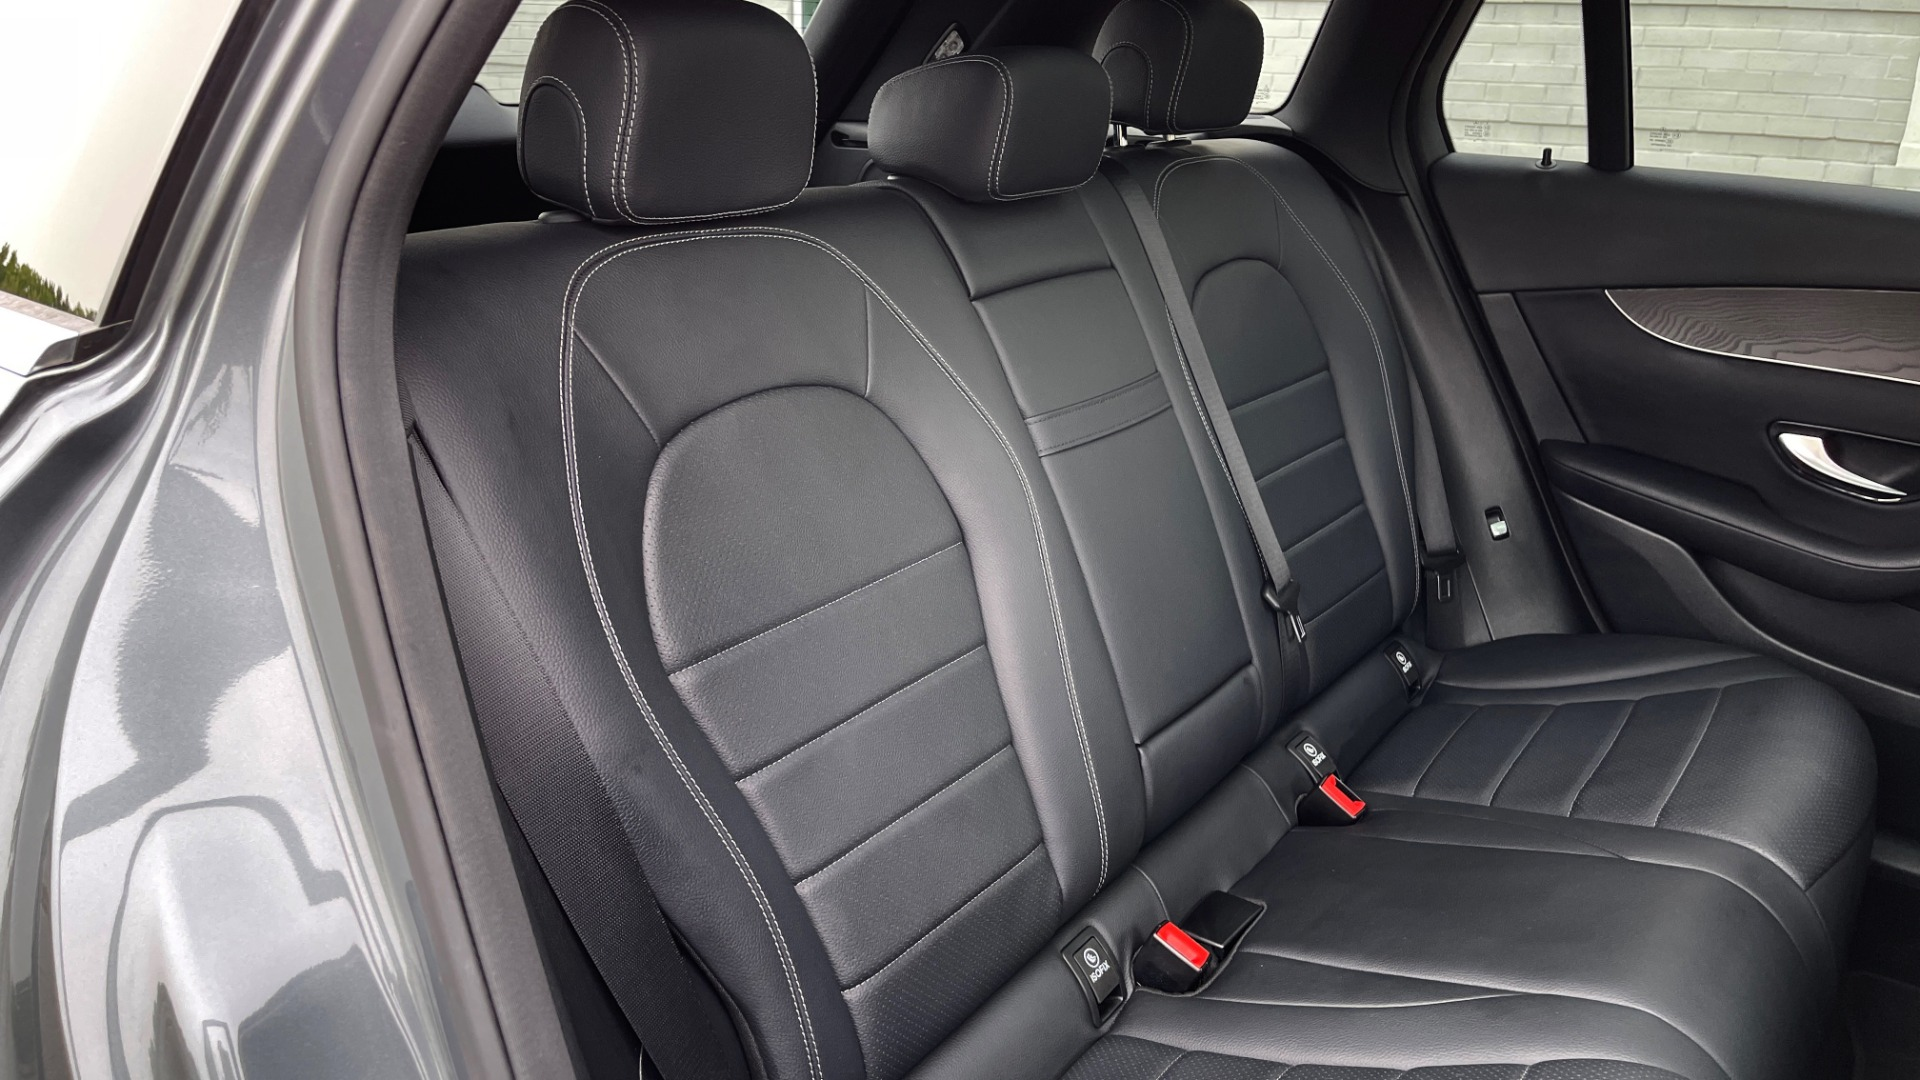 Used 2018 Mercedes-Benz GLC 300 4MATIC PREMIUM / PANO-ROOF / HTD STS / APPLE / REARVIEW for sale $34,295 at Formula Imports in Charlotte NC 28227 57